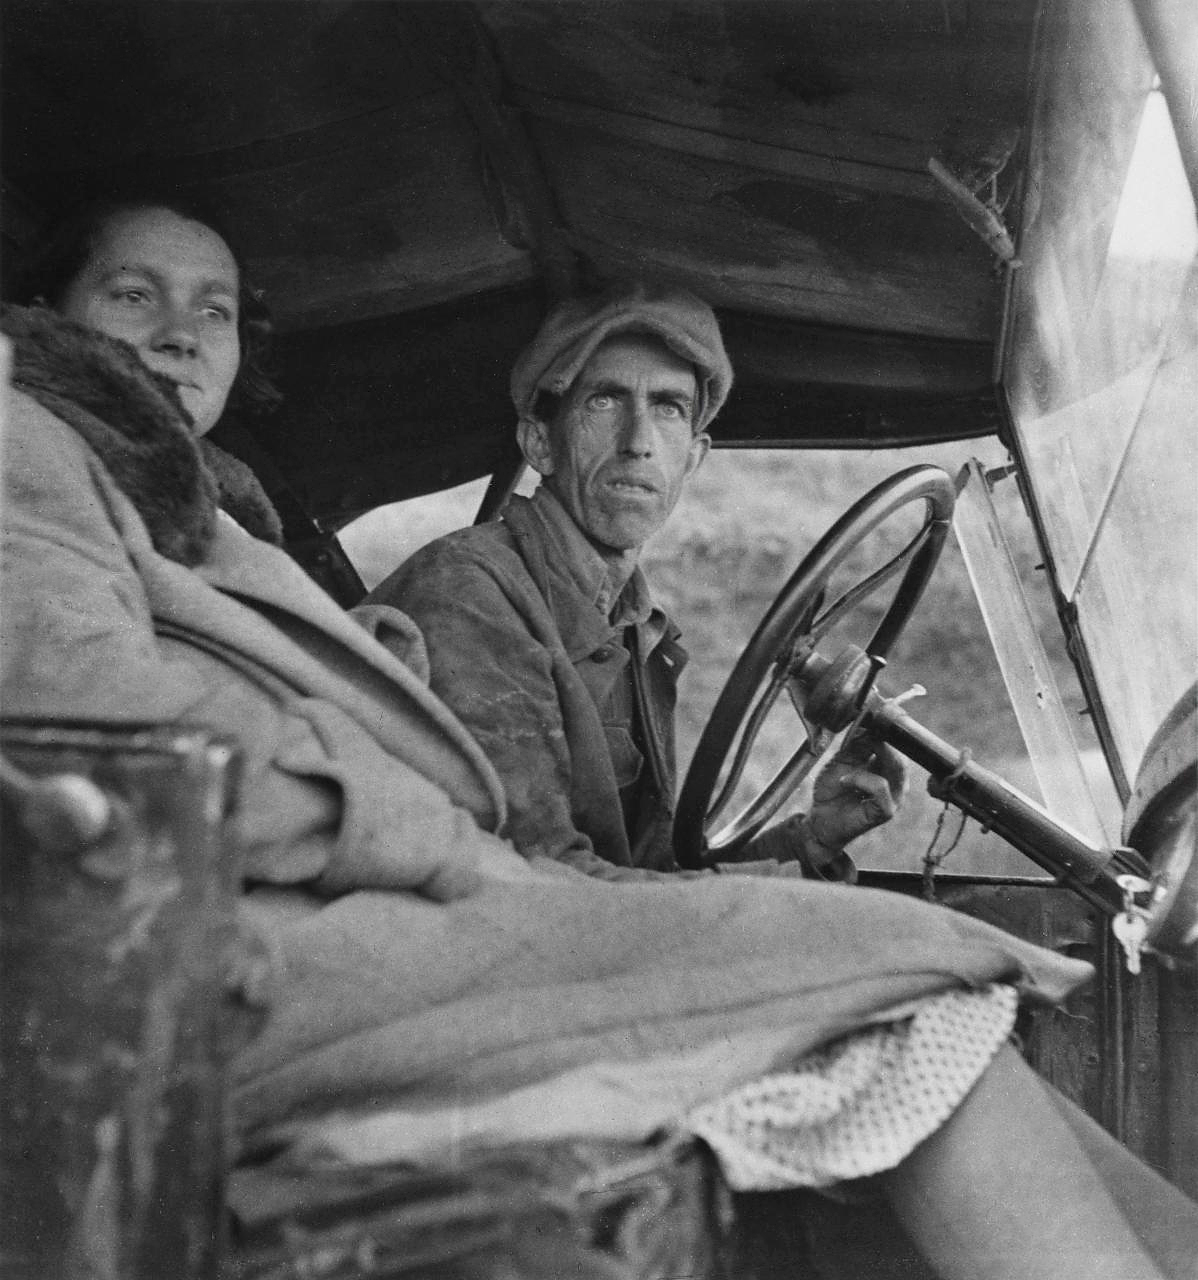 Fotó: Dorothea Lange: Ditched, Stalled, and Stranded, San Joaquin Valley, California, 1936 © The Dorothea Lange Collection, the Oakland Museum of California